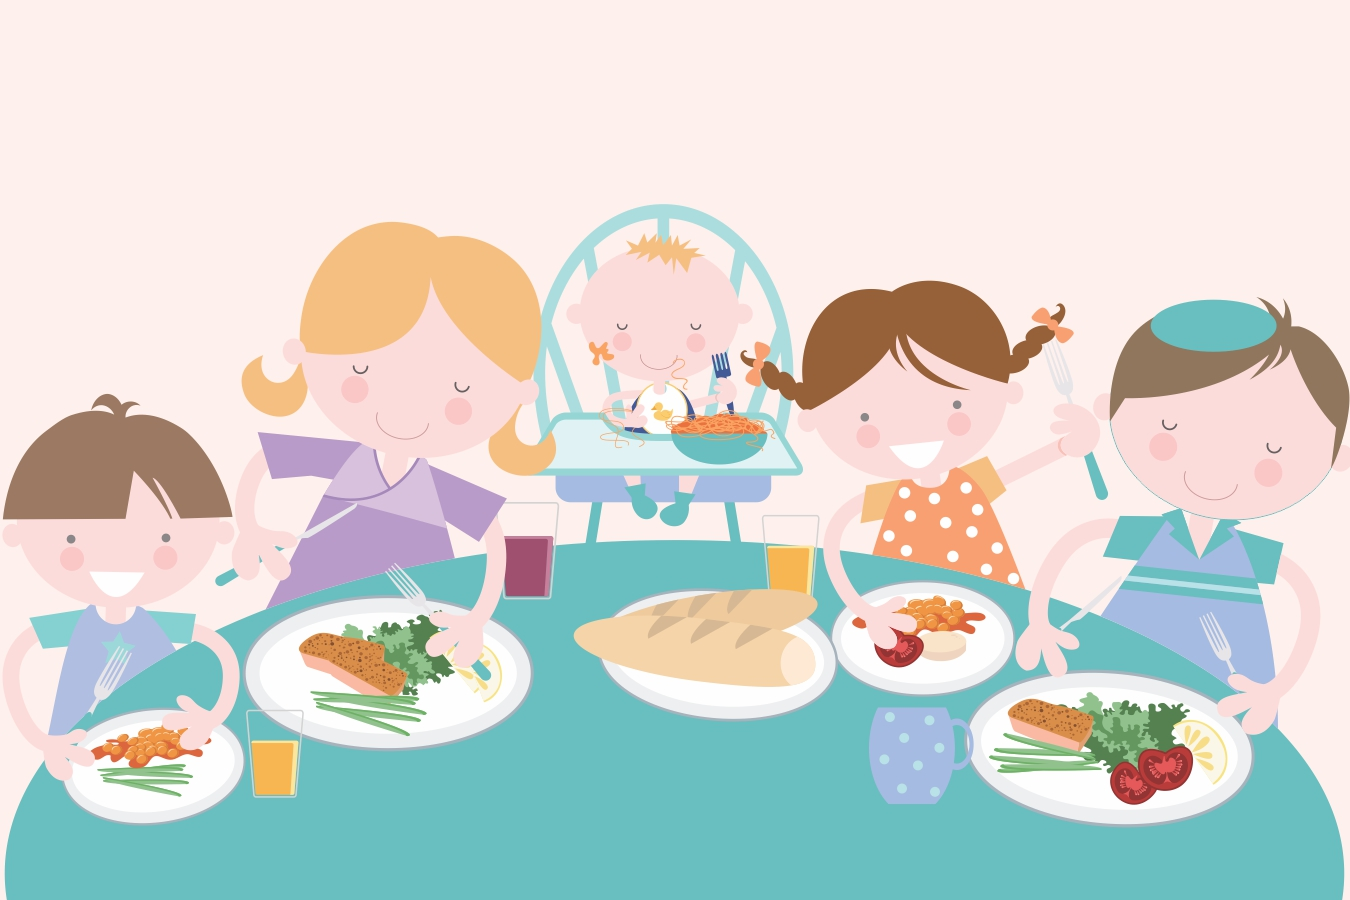 3 Ways to Make Meal Time with Kids Calm and Relaxing